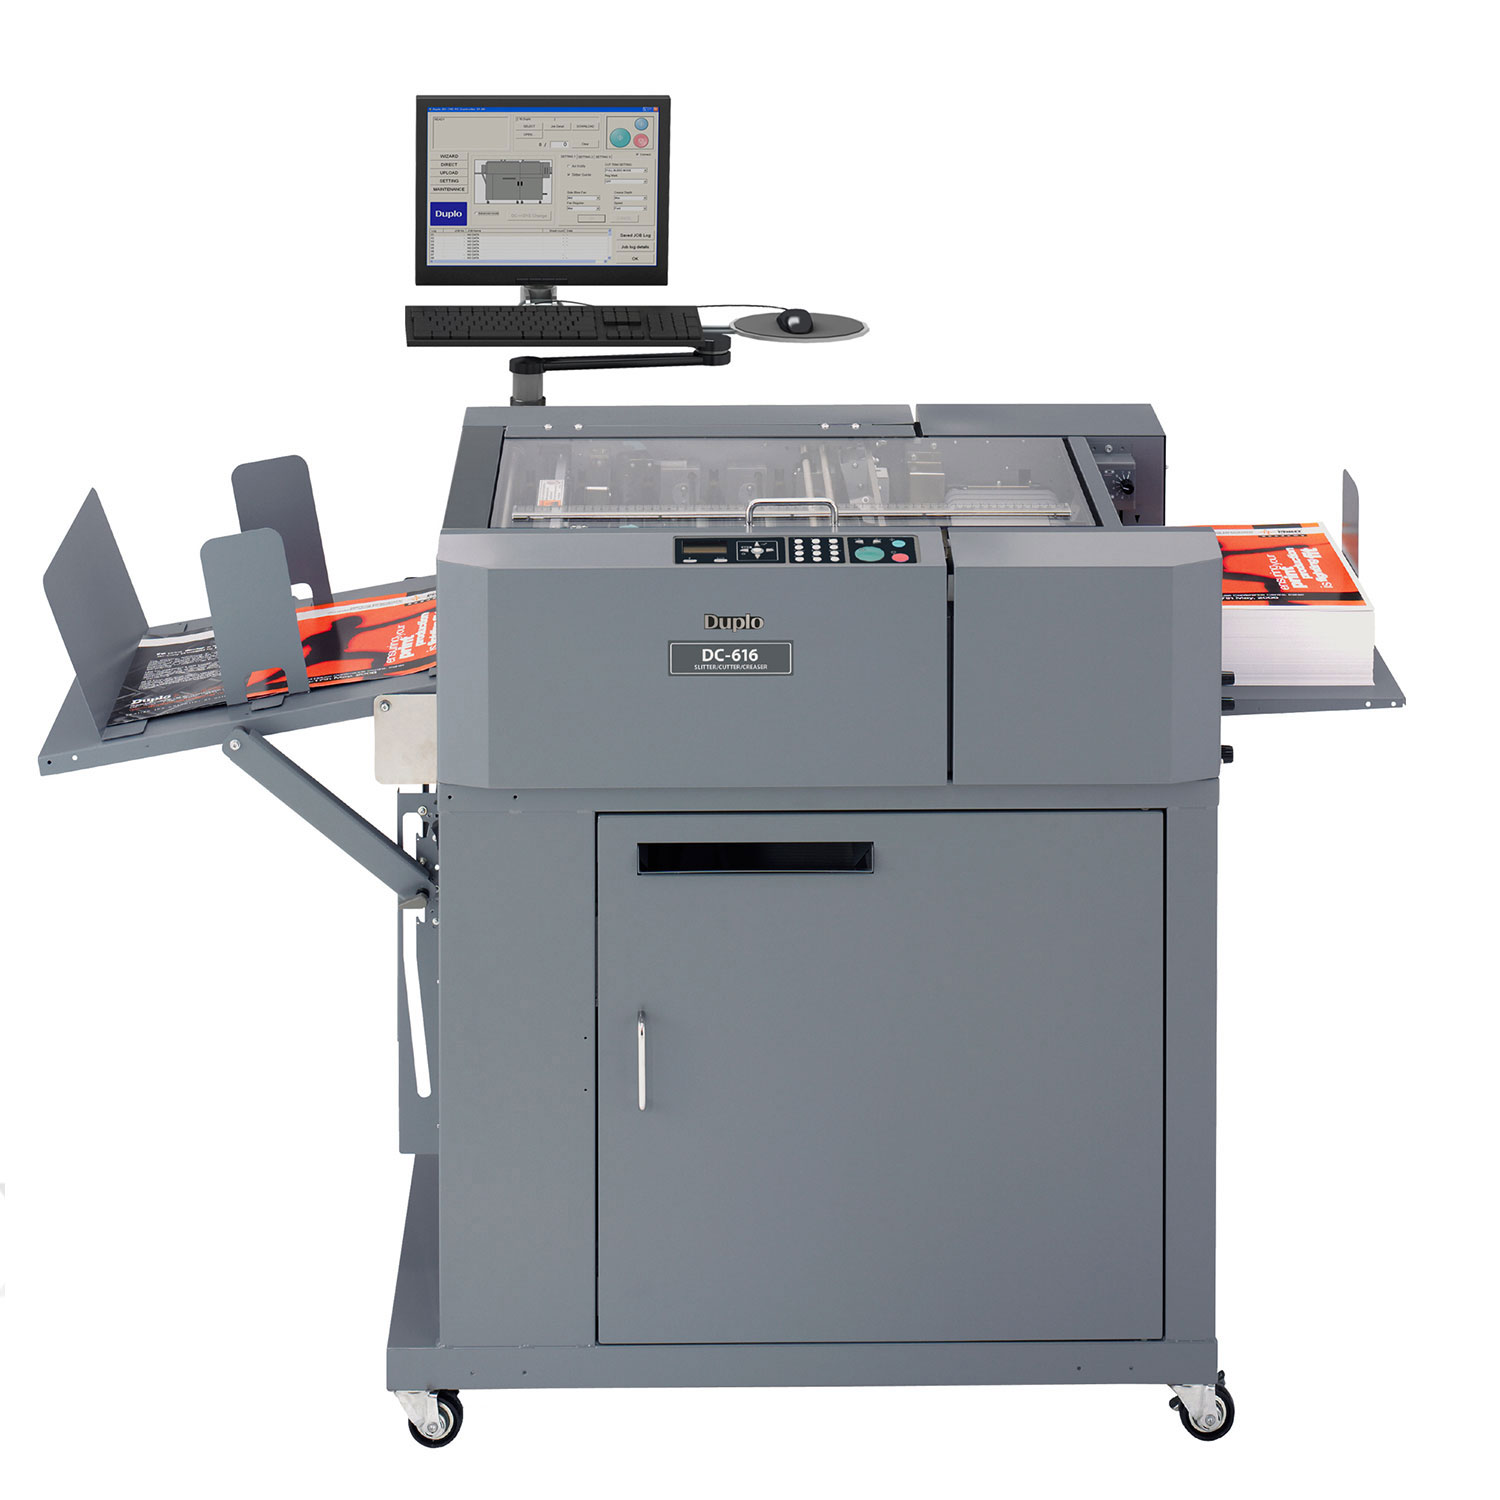 Duplo dc 616 pro multi finisher creaser cutter perforator duplo dc 616 pro creaser cutter slitter machine reheart Images